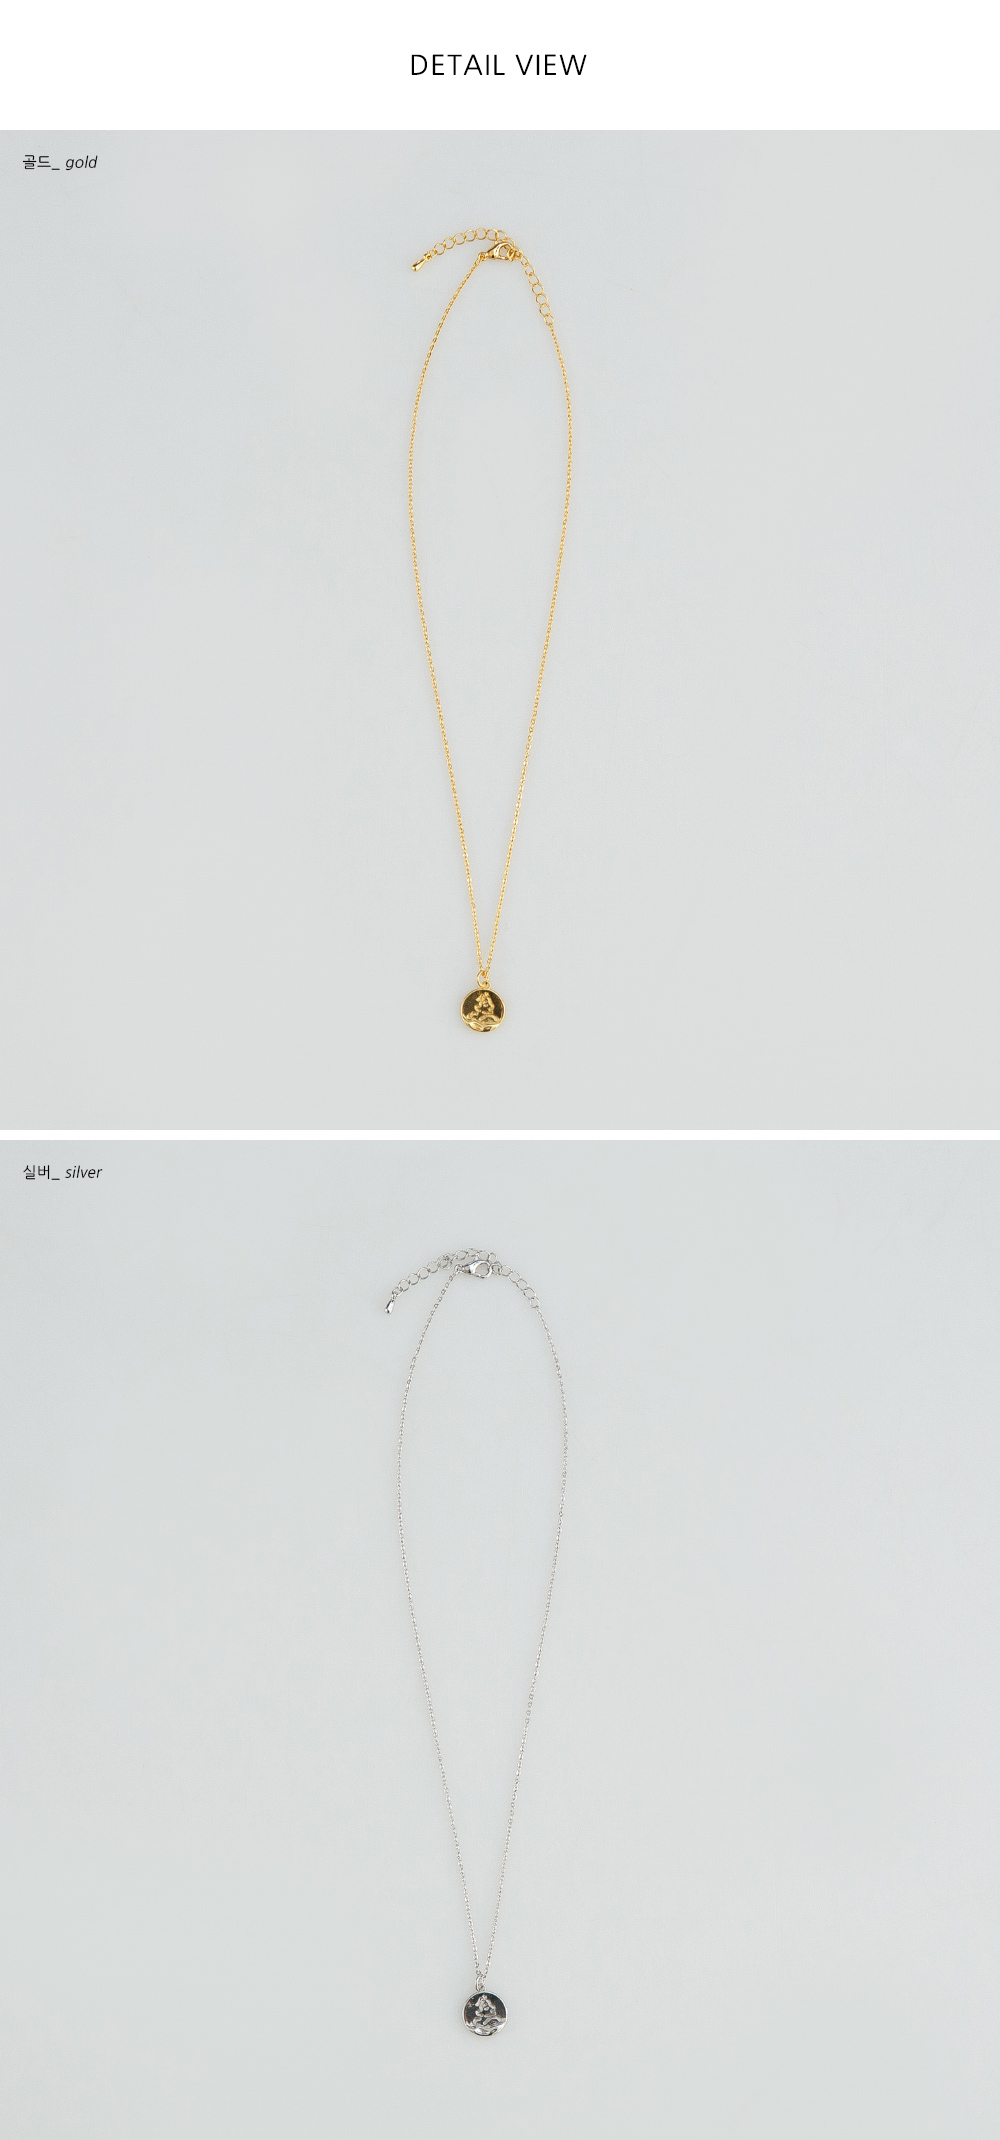 Drawing circle pendant necklace